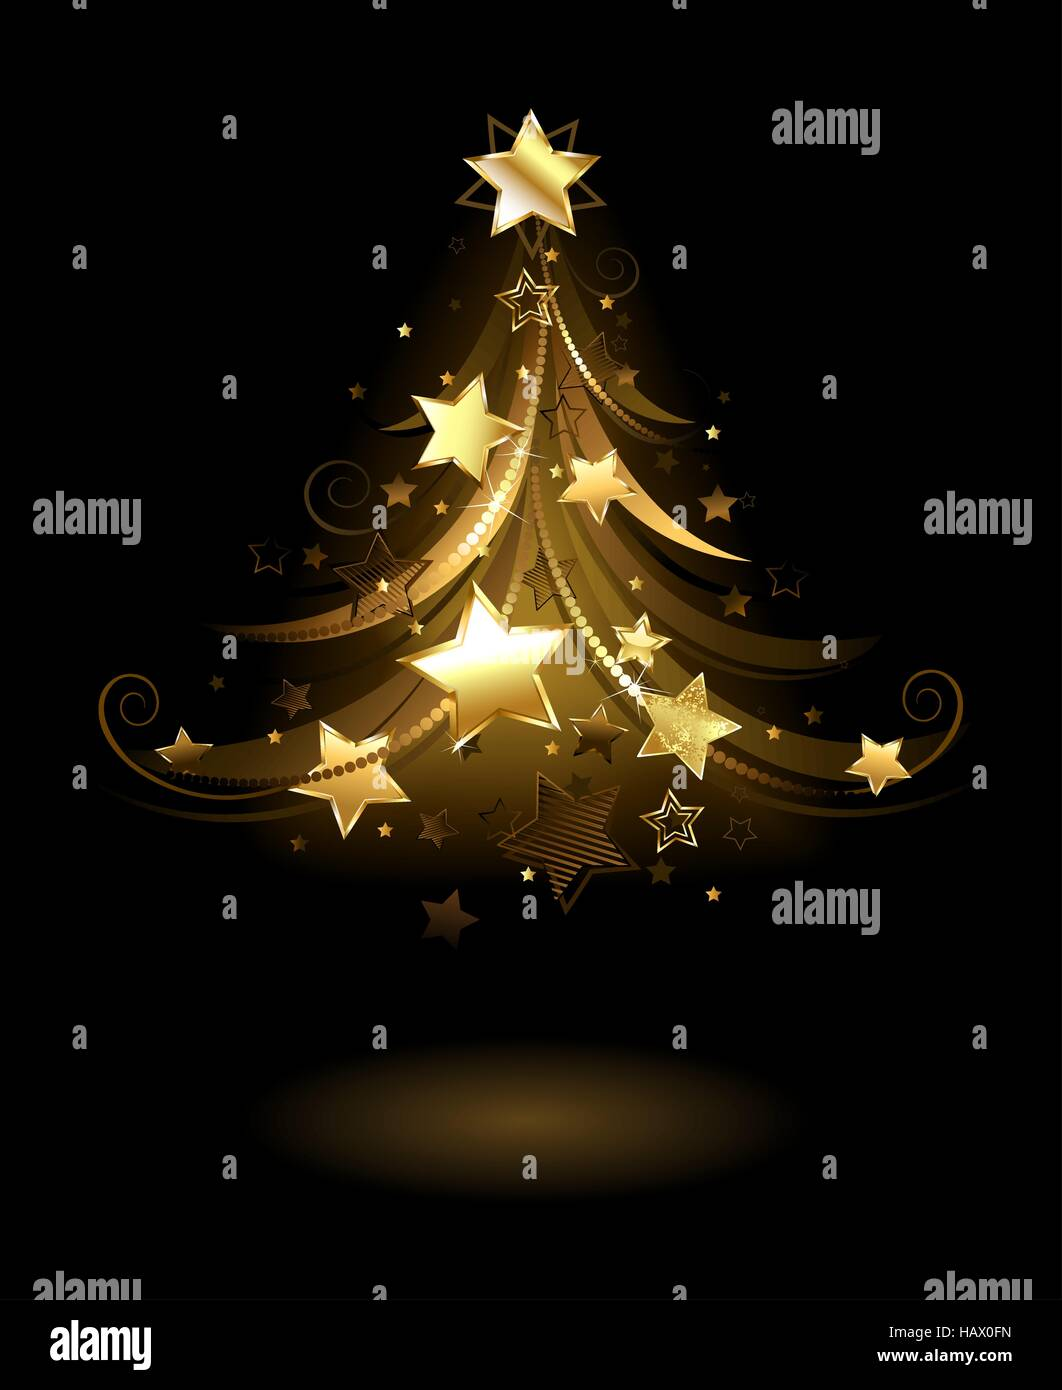 artistically painted golden spruce, decorated with gold stars on a black background. - Stock Vector